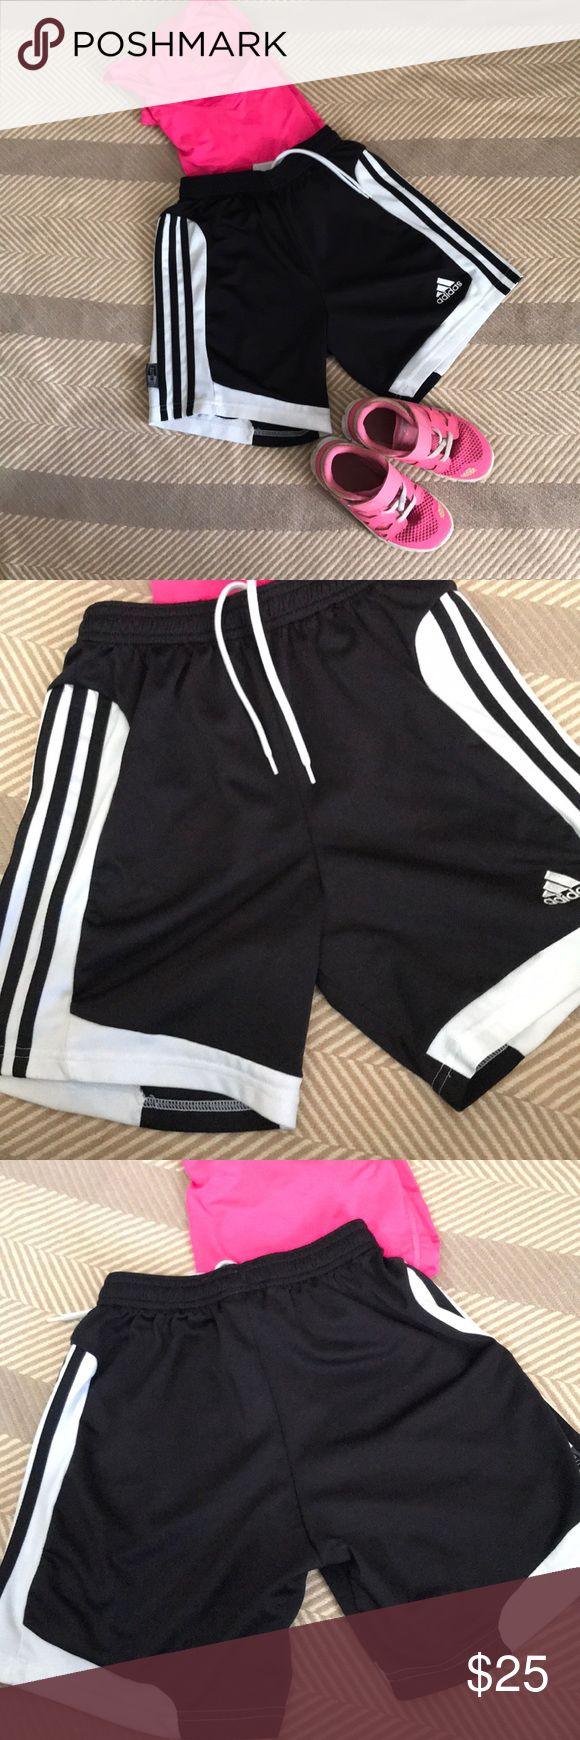 Adidas Adjustable Soccer Shorts Perfect exercise shorts for your little one whether for soccer, basketball, or just playing outside !!  🖤🖤  Size: S  All items come from a smoke free home and include lavender sheets when shipped ! All items are shipped within 48 hrs or less (not including weekends) Any questions feel free to ask  😘😉 Happy shopping 😘😉 adidas Bottoms Shorts